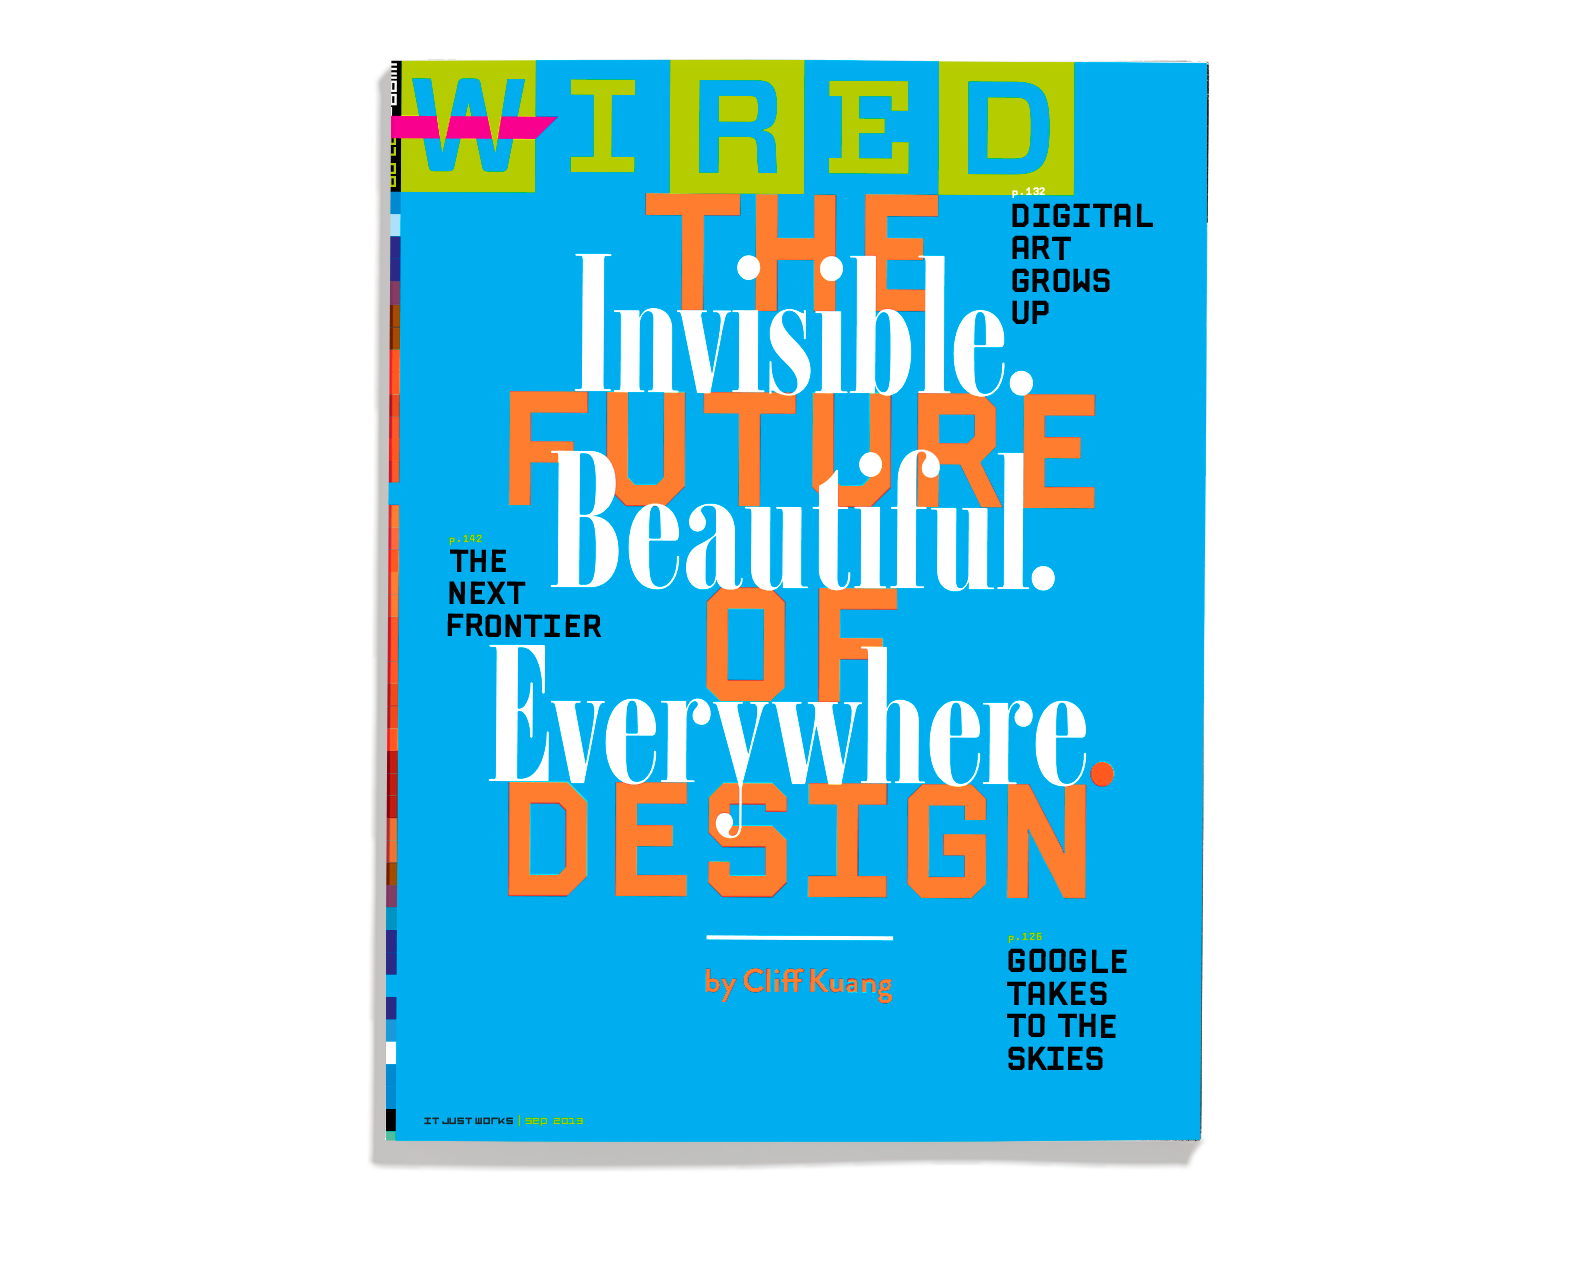 2013_Invisible_design_1x1.png